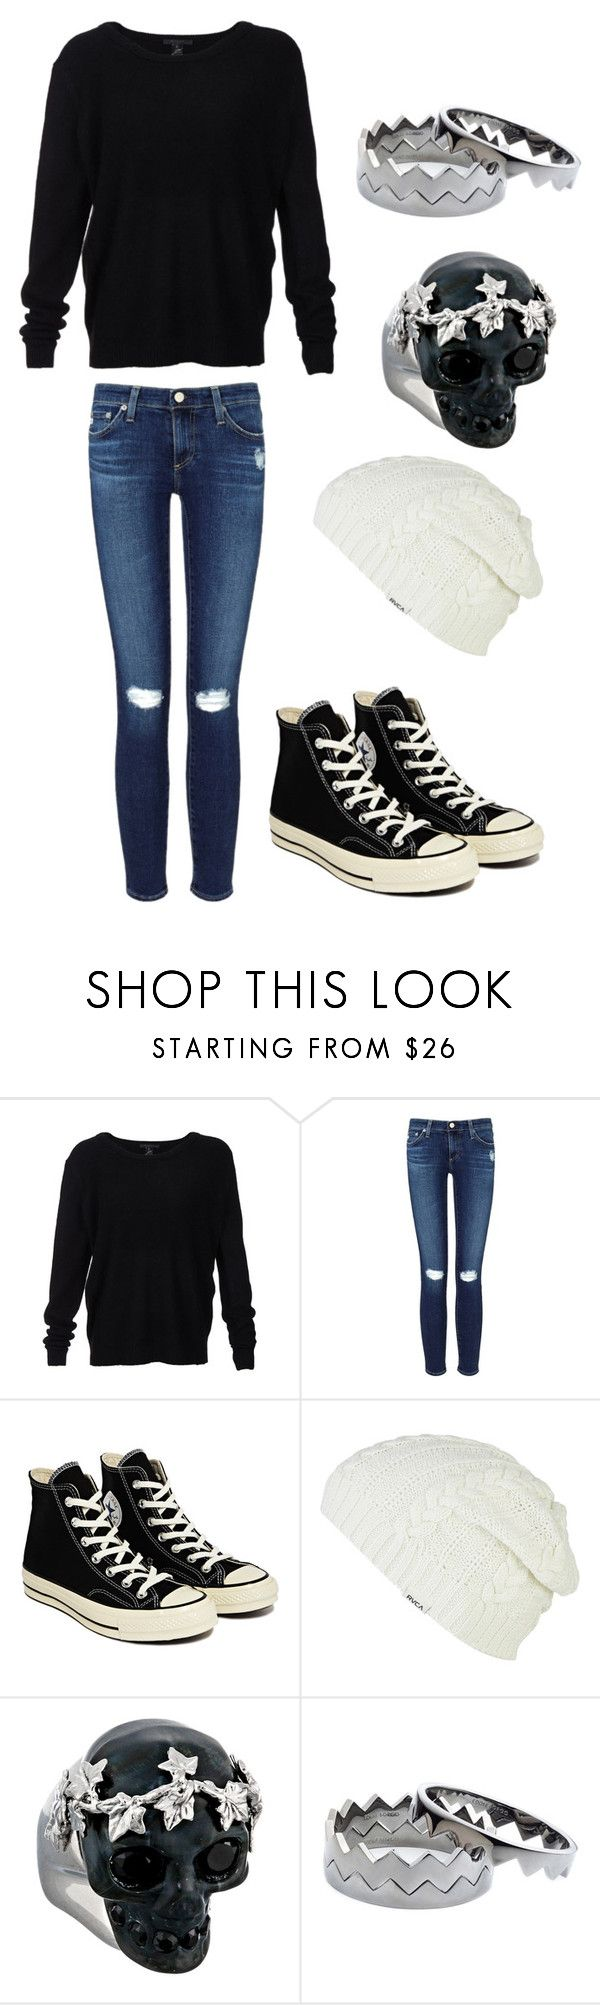 """""""Dani 12"""" by icanseethestarsagain ❤ liked on Polyvore featuring Scoop, AG Adriano Goldschmied, Converse, RVCA, Alexander McQueen and Eddie Borgo"""